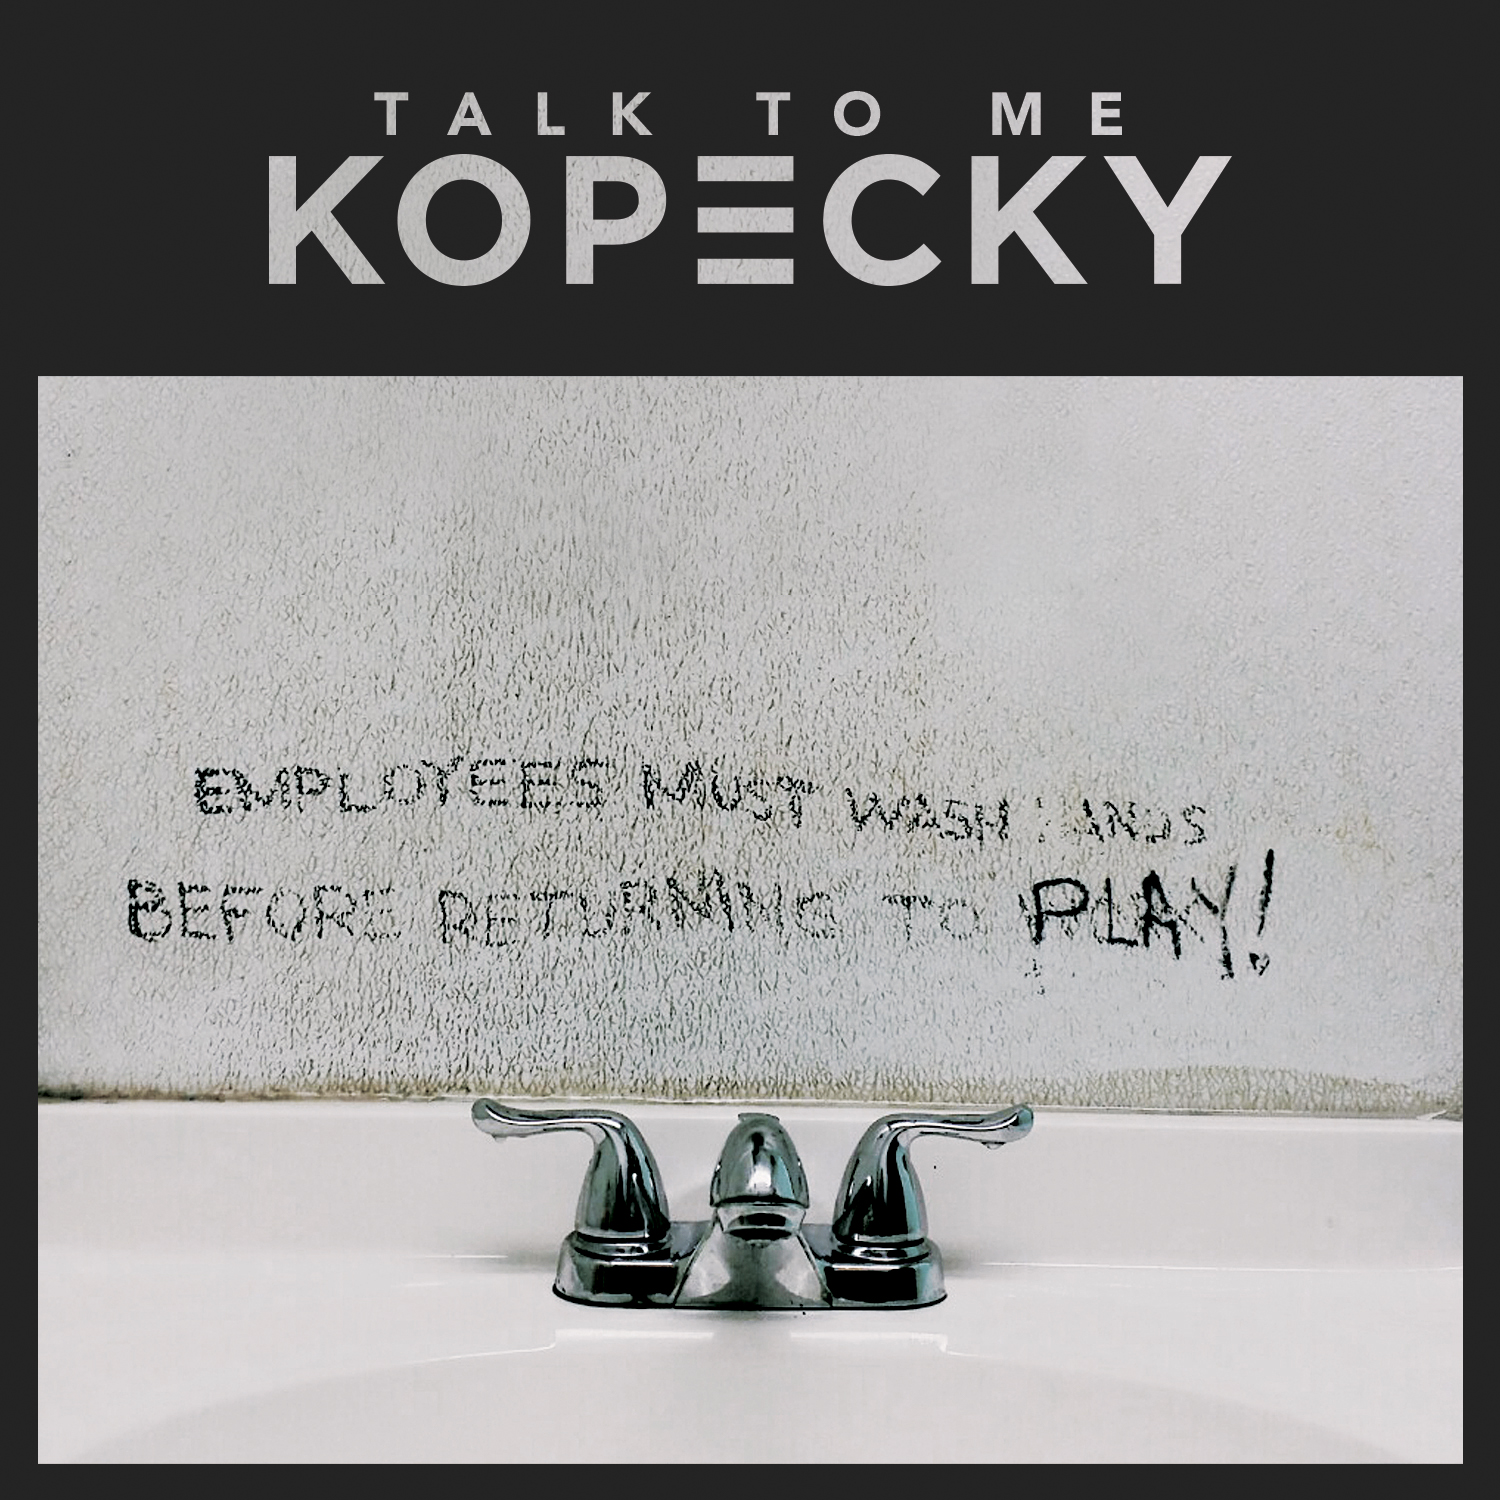 Kopecky_AlbumCover_TalkToMe_Final